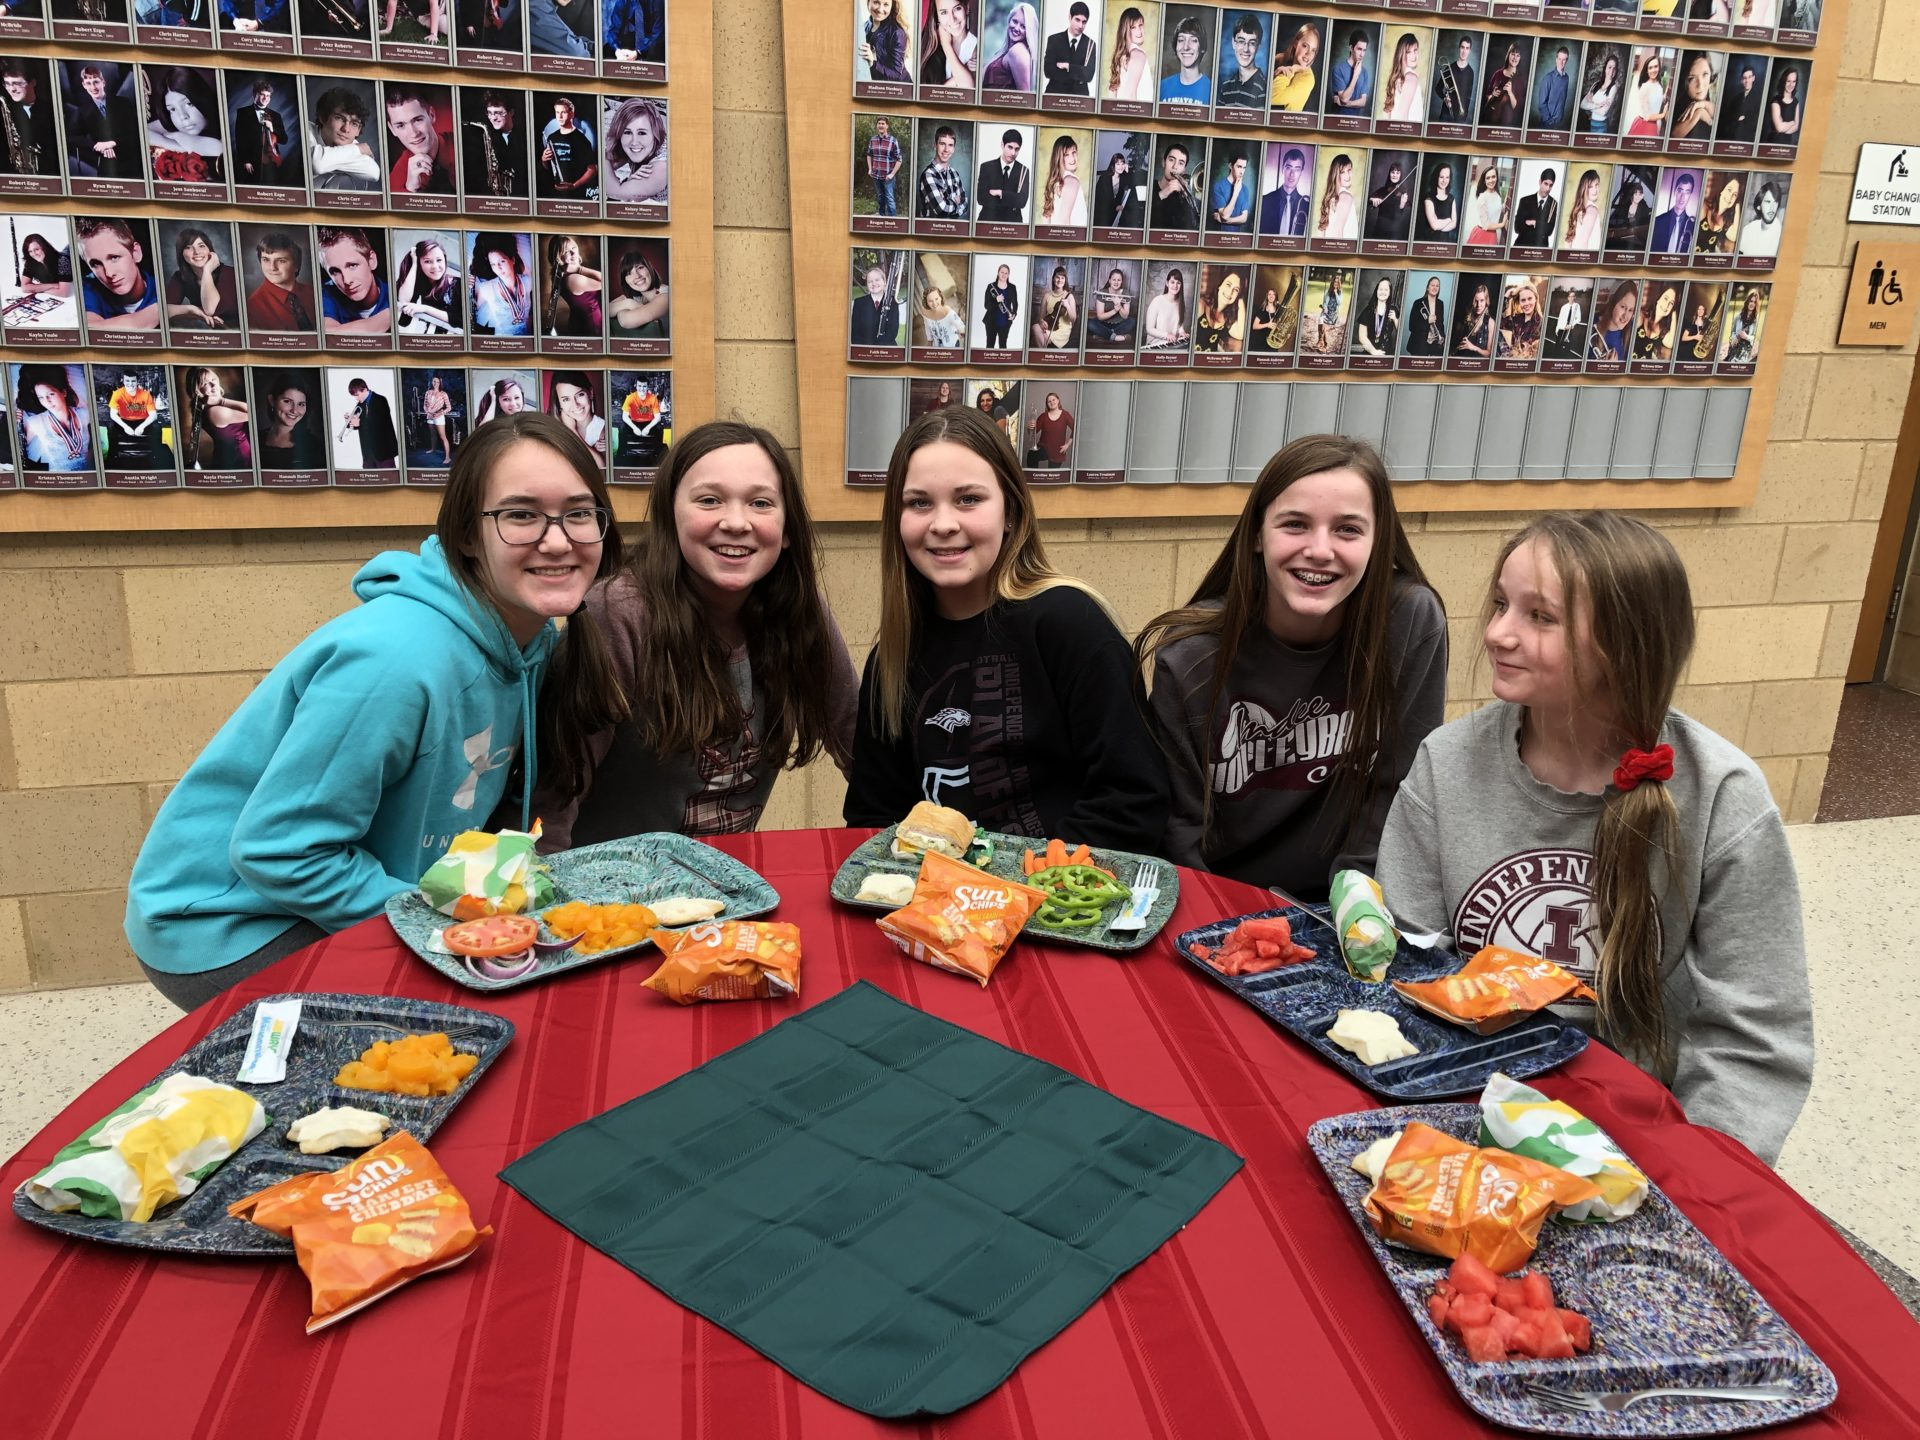 students eat lunch together